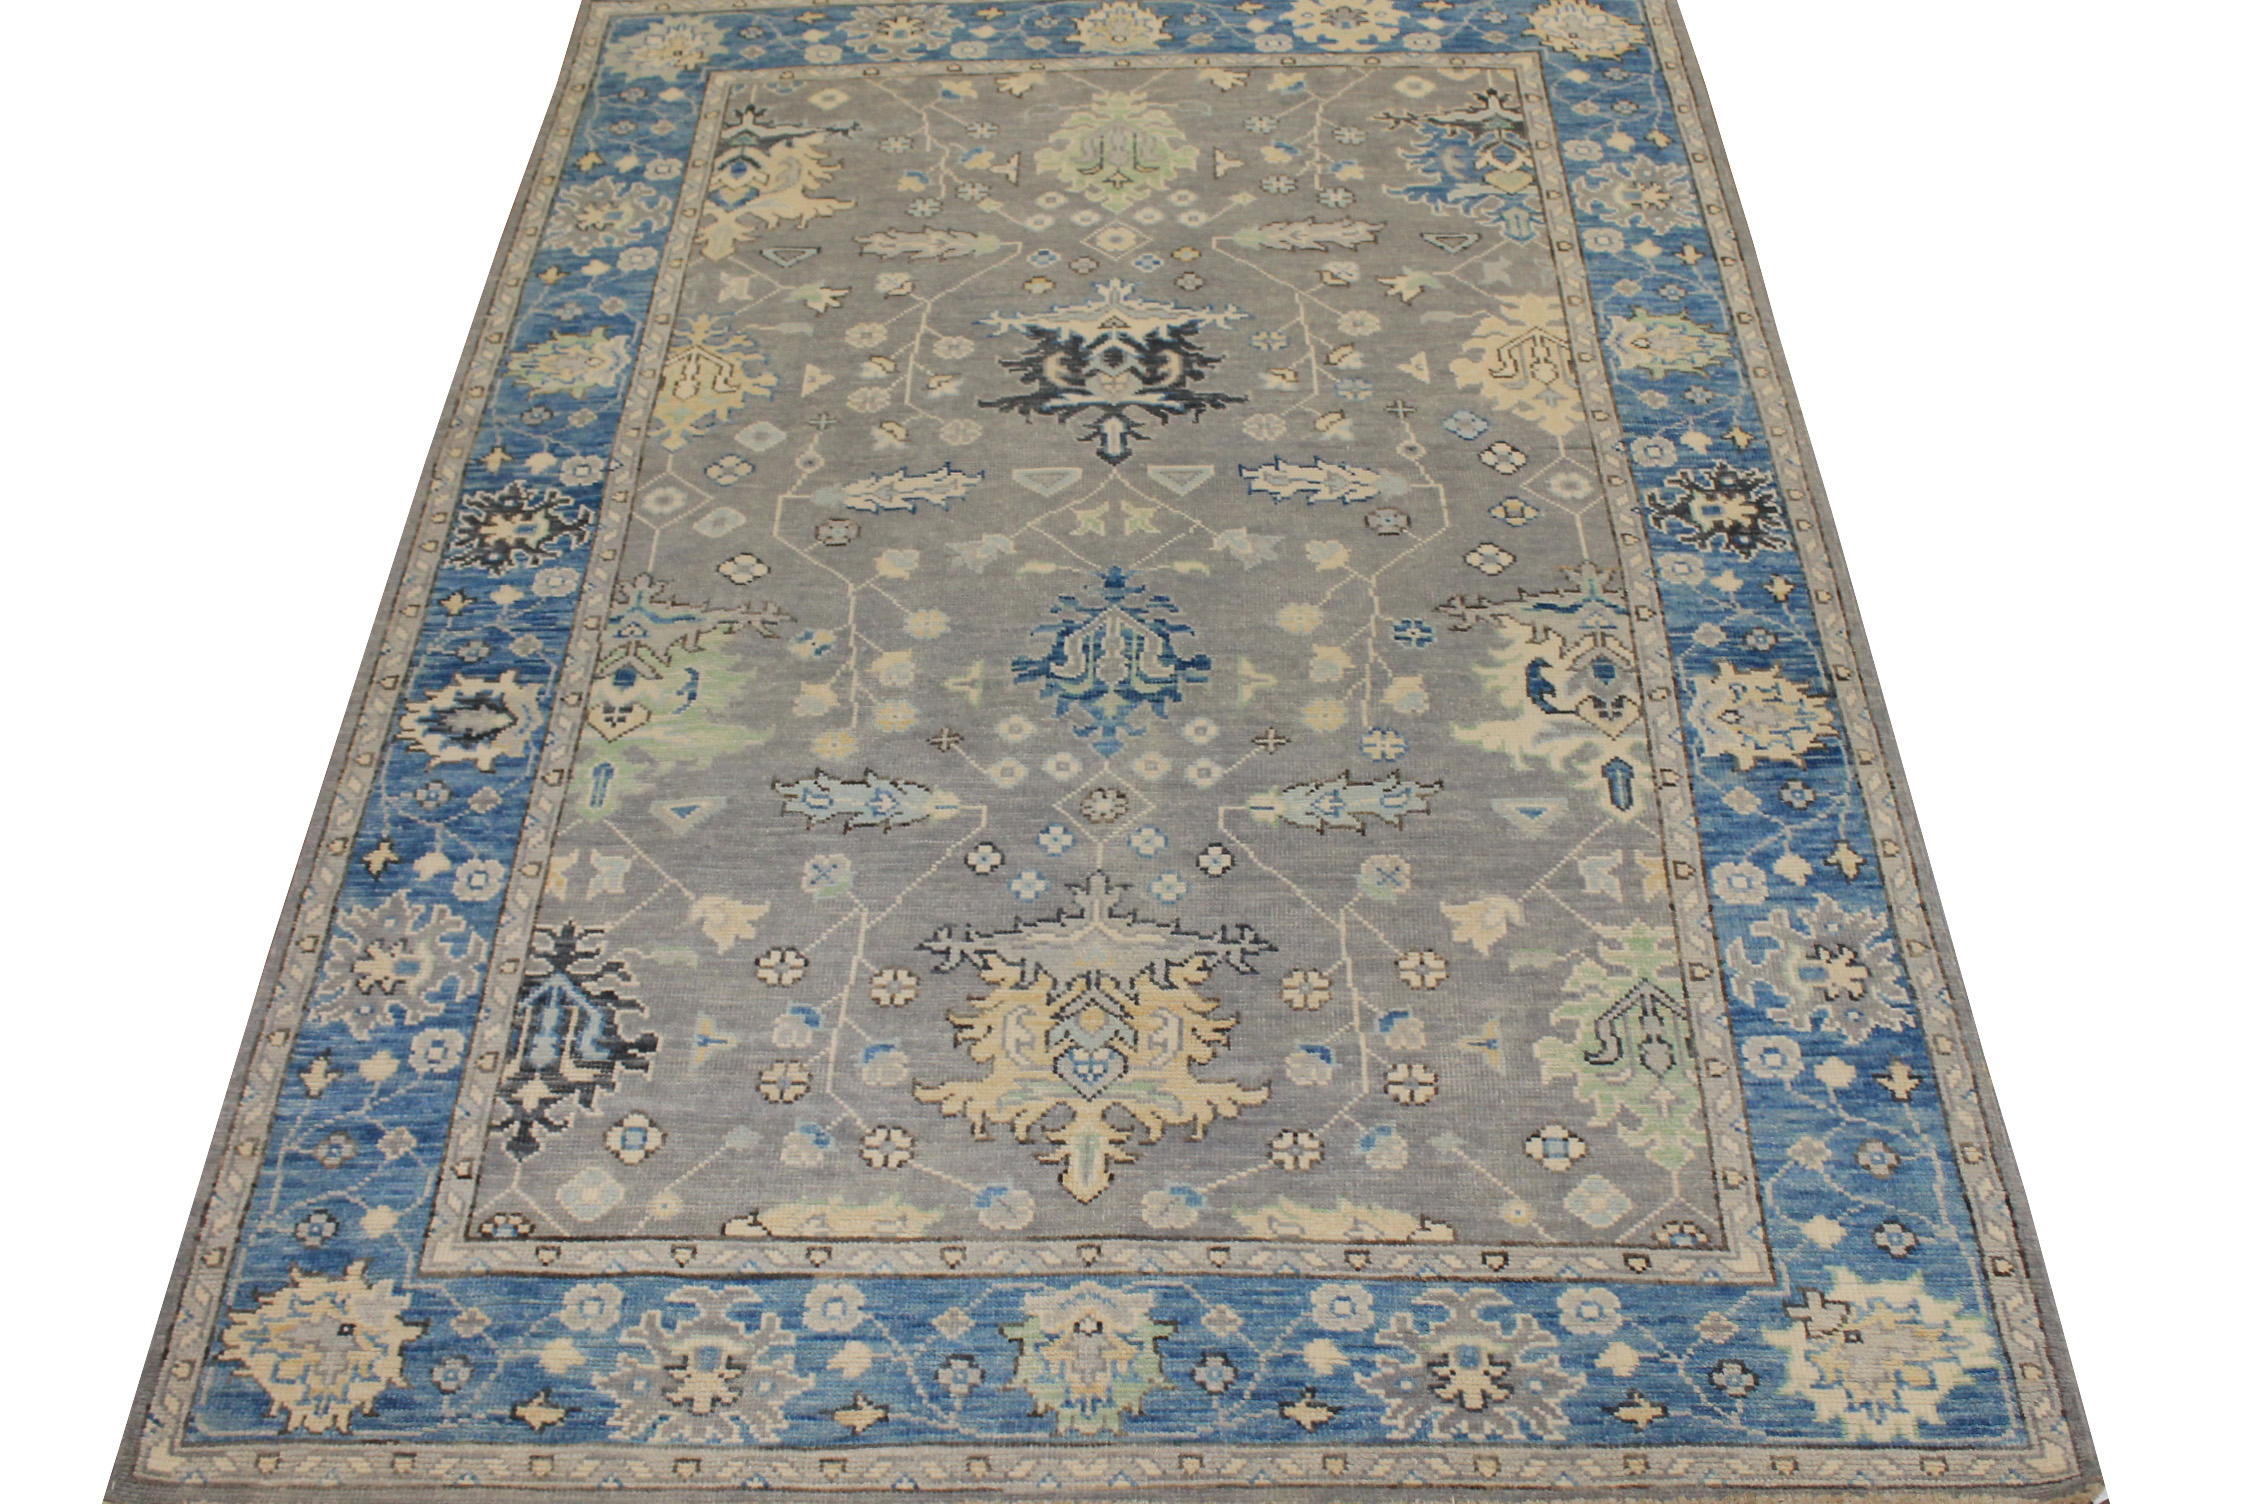 6x9 Oushak Hand Knotted Wool Area Rug - MR024413